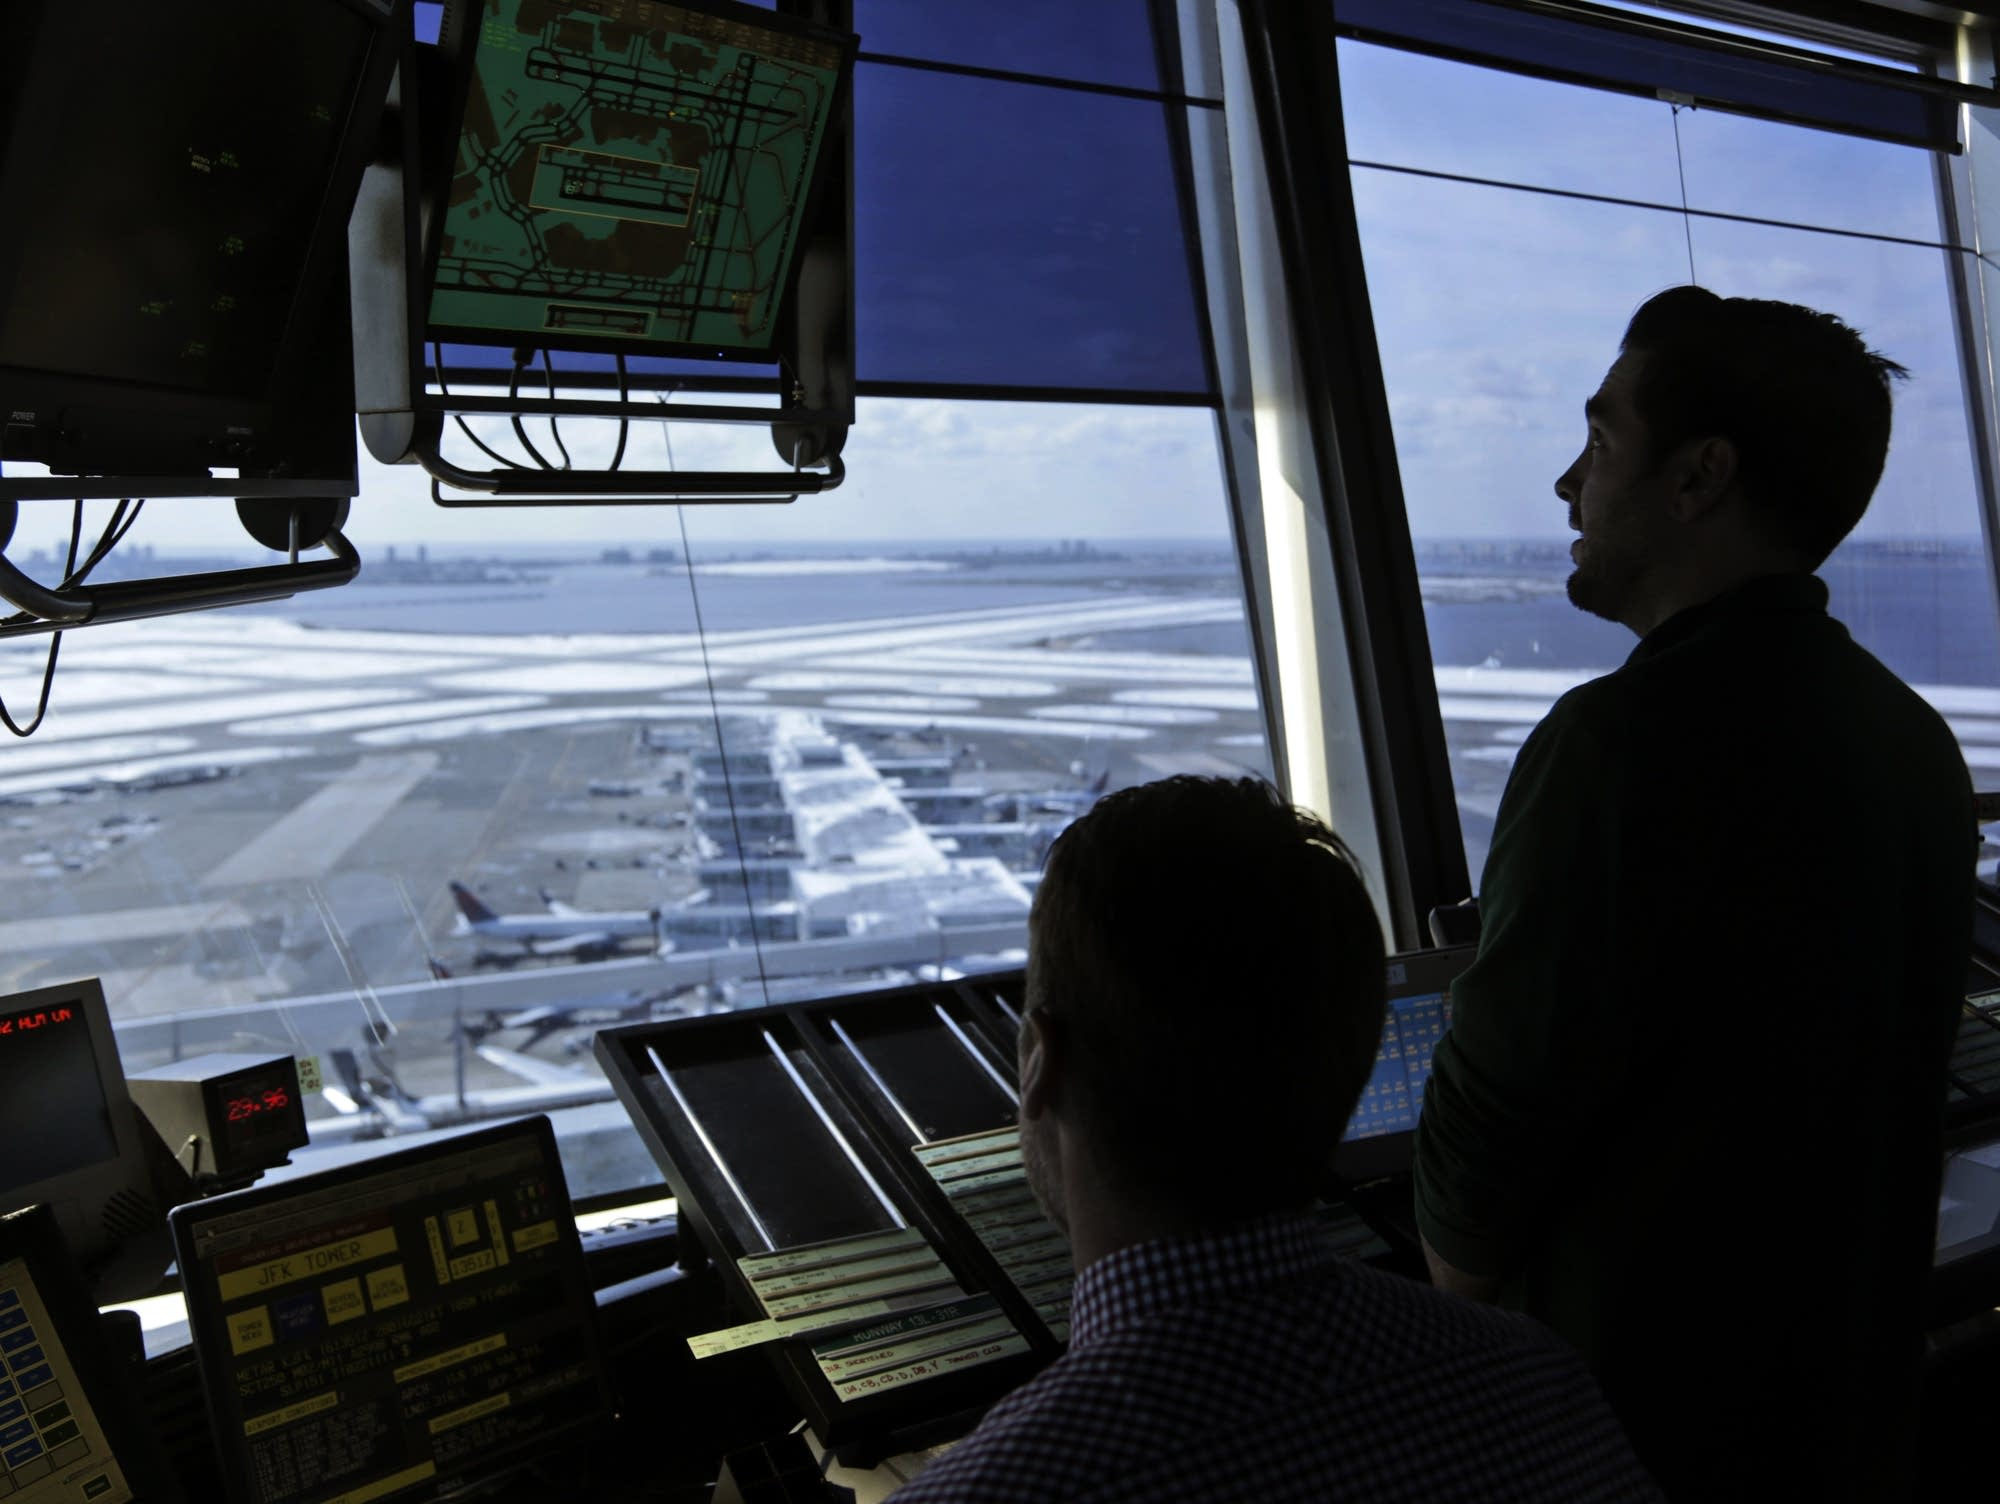 Air traffic controllers work in the tower at JFK Airport in New York.